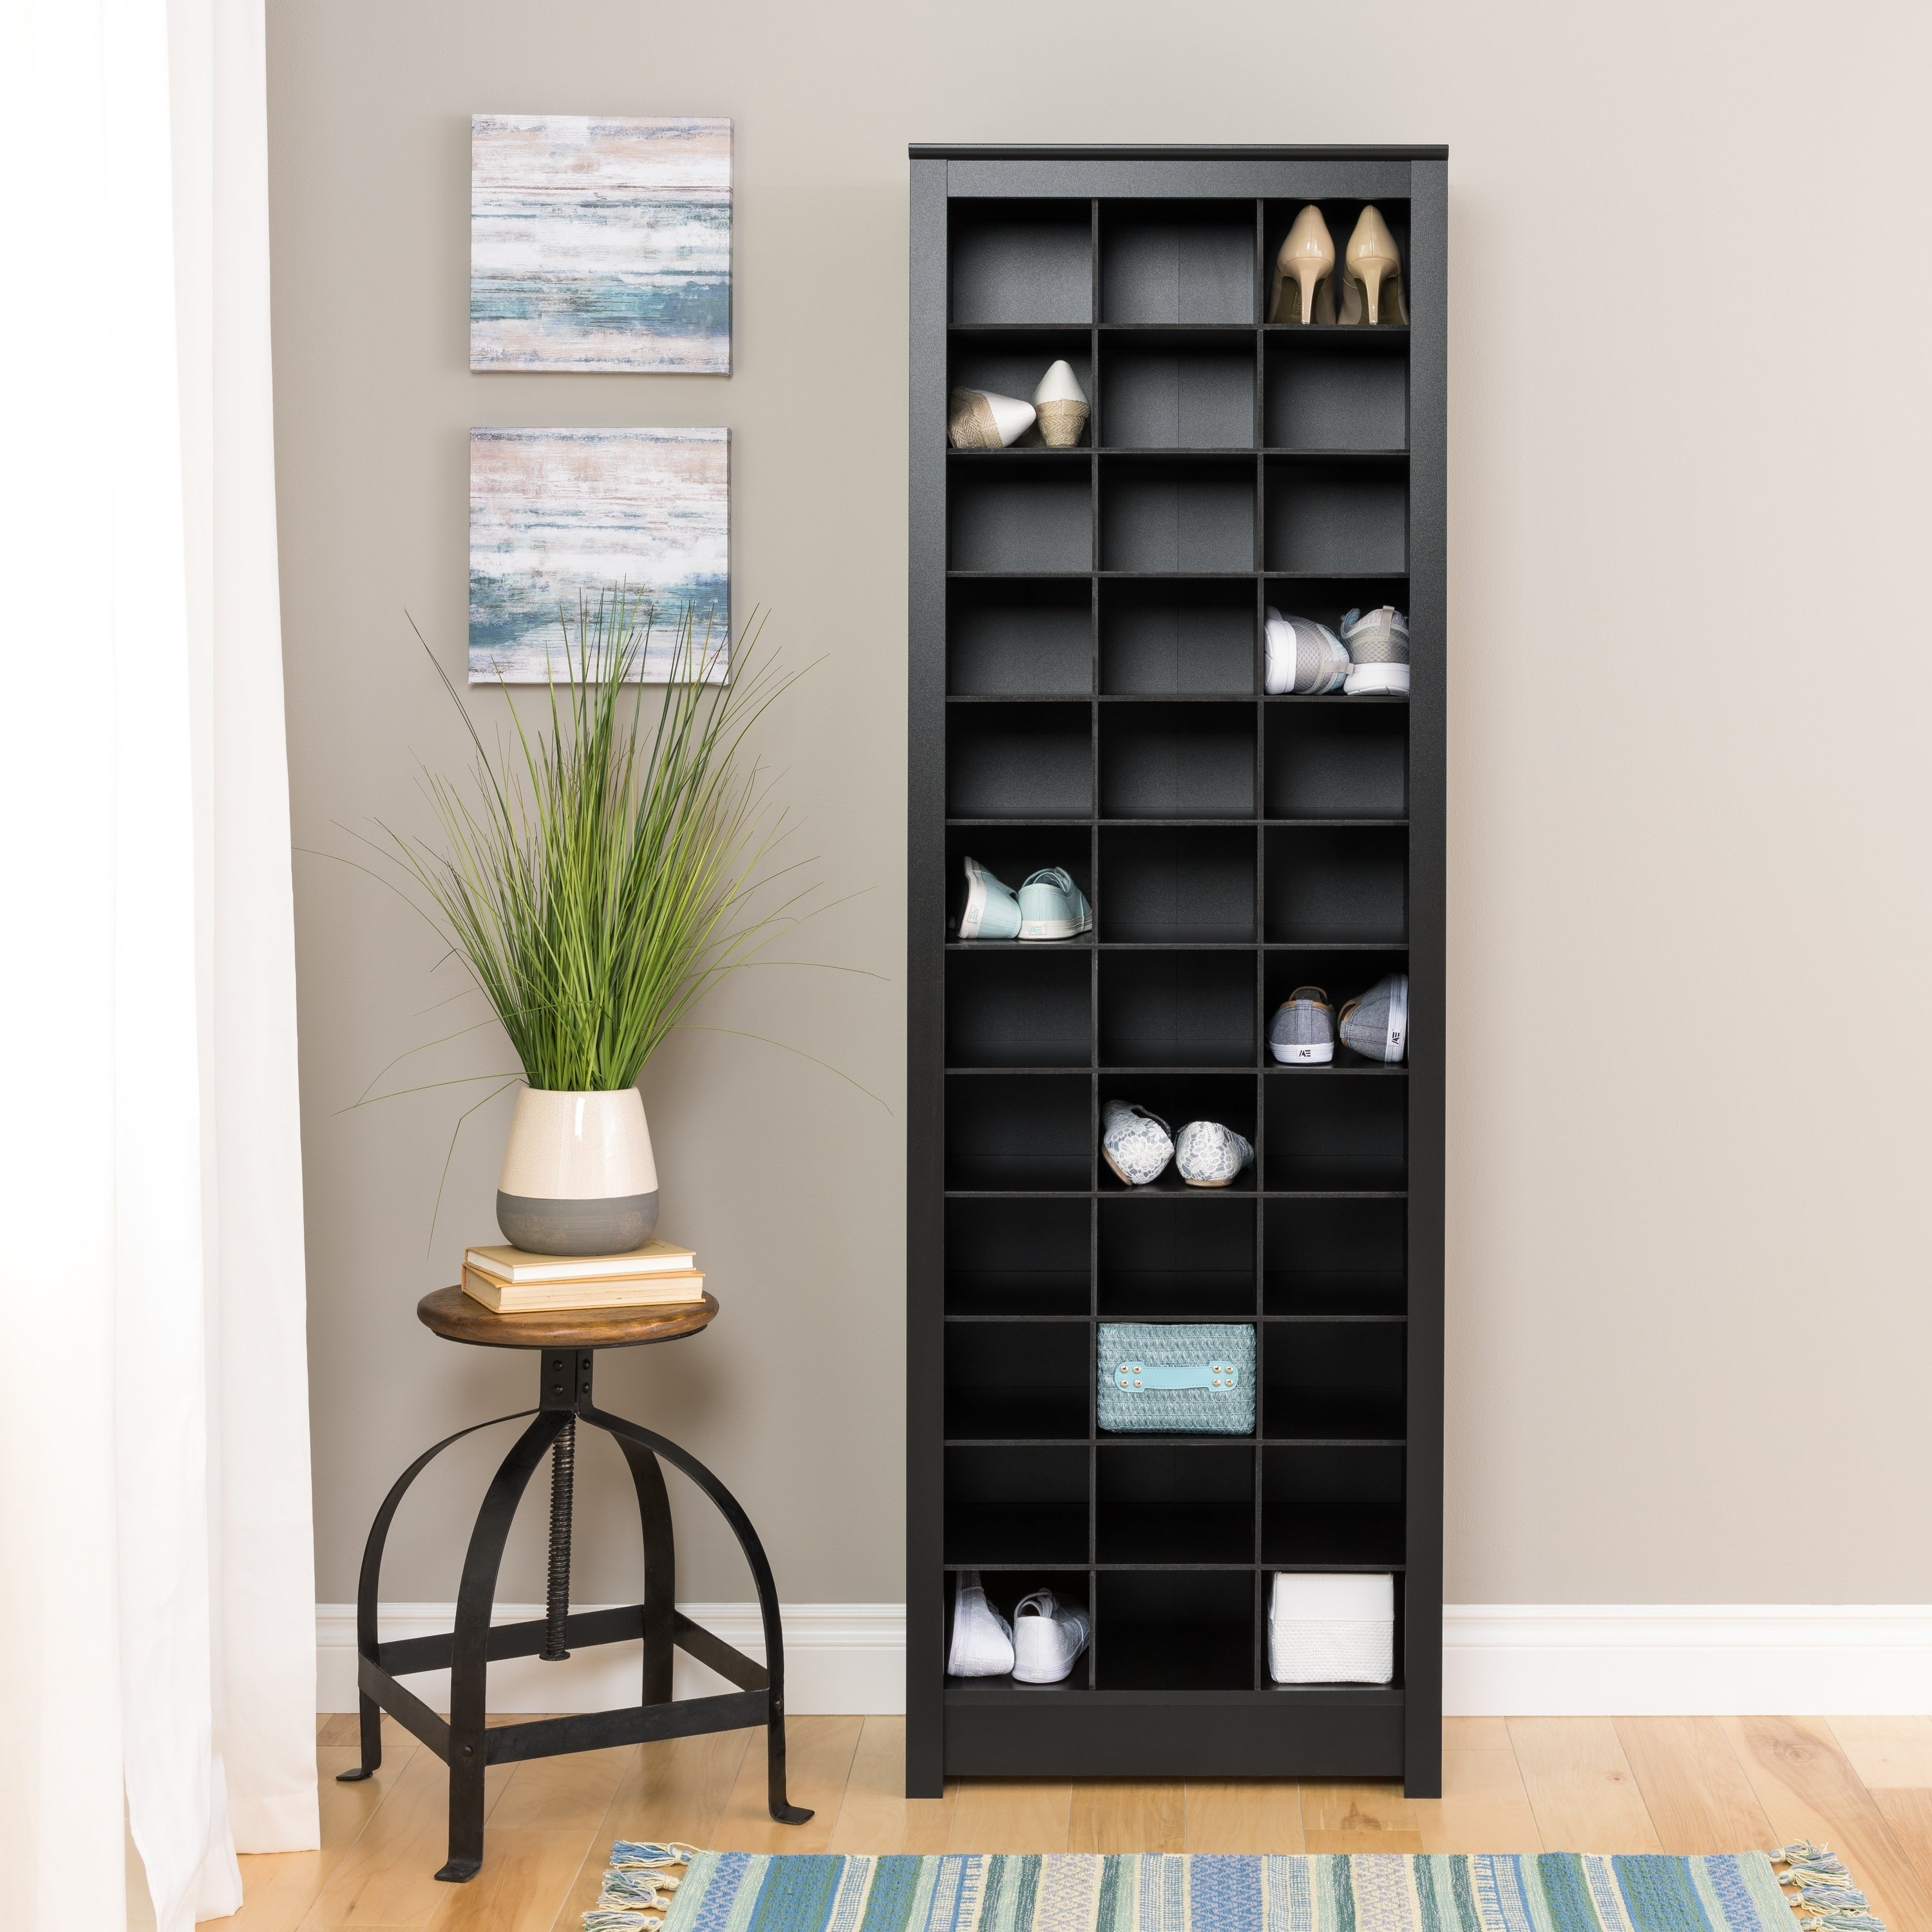 storage cabinet organization shoe pair modern studio reviews cade brayden pdx wayfair